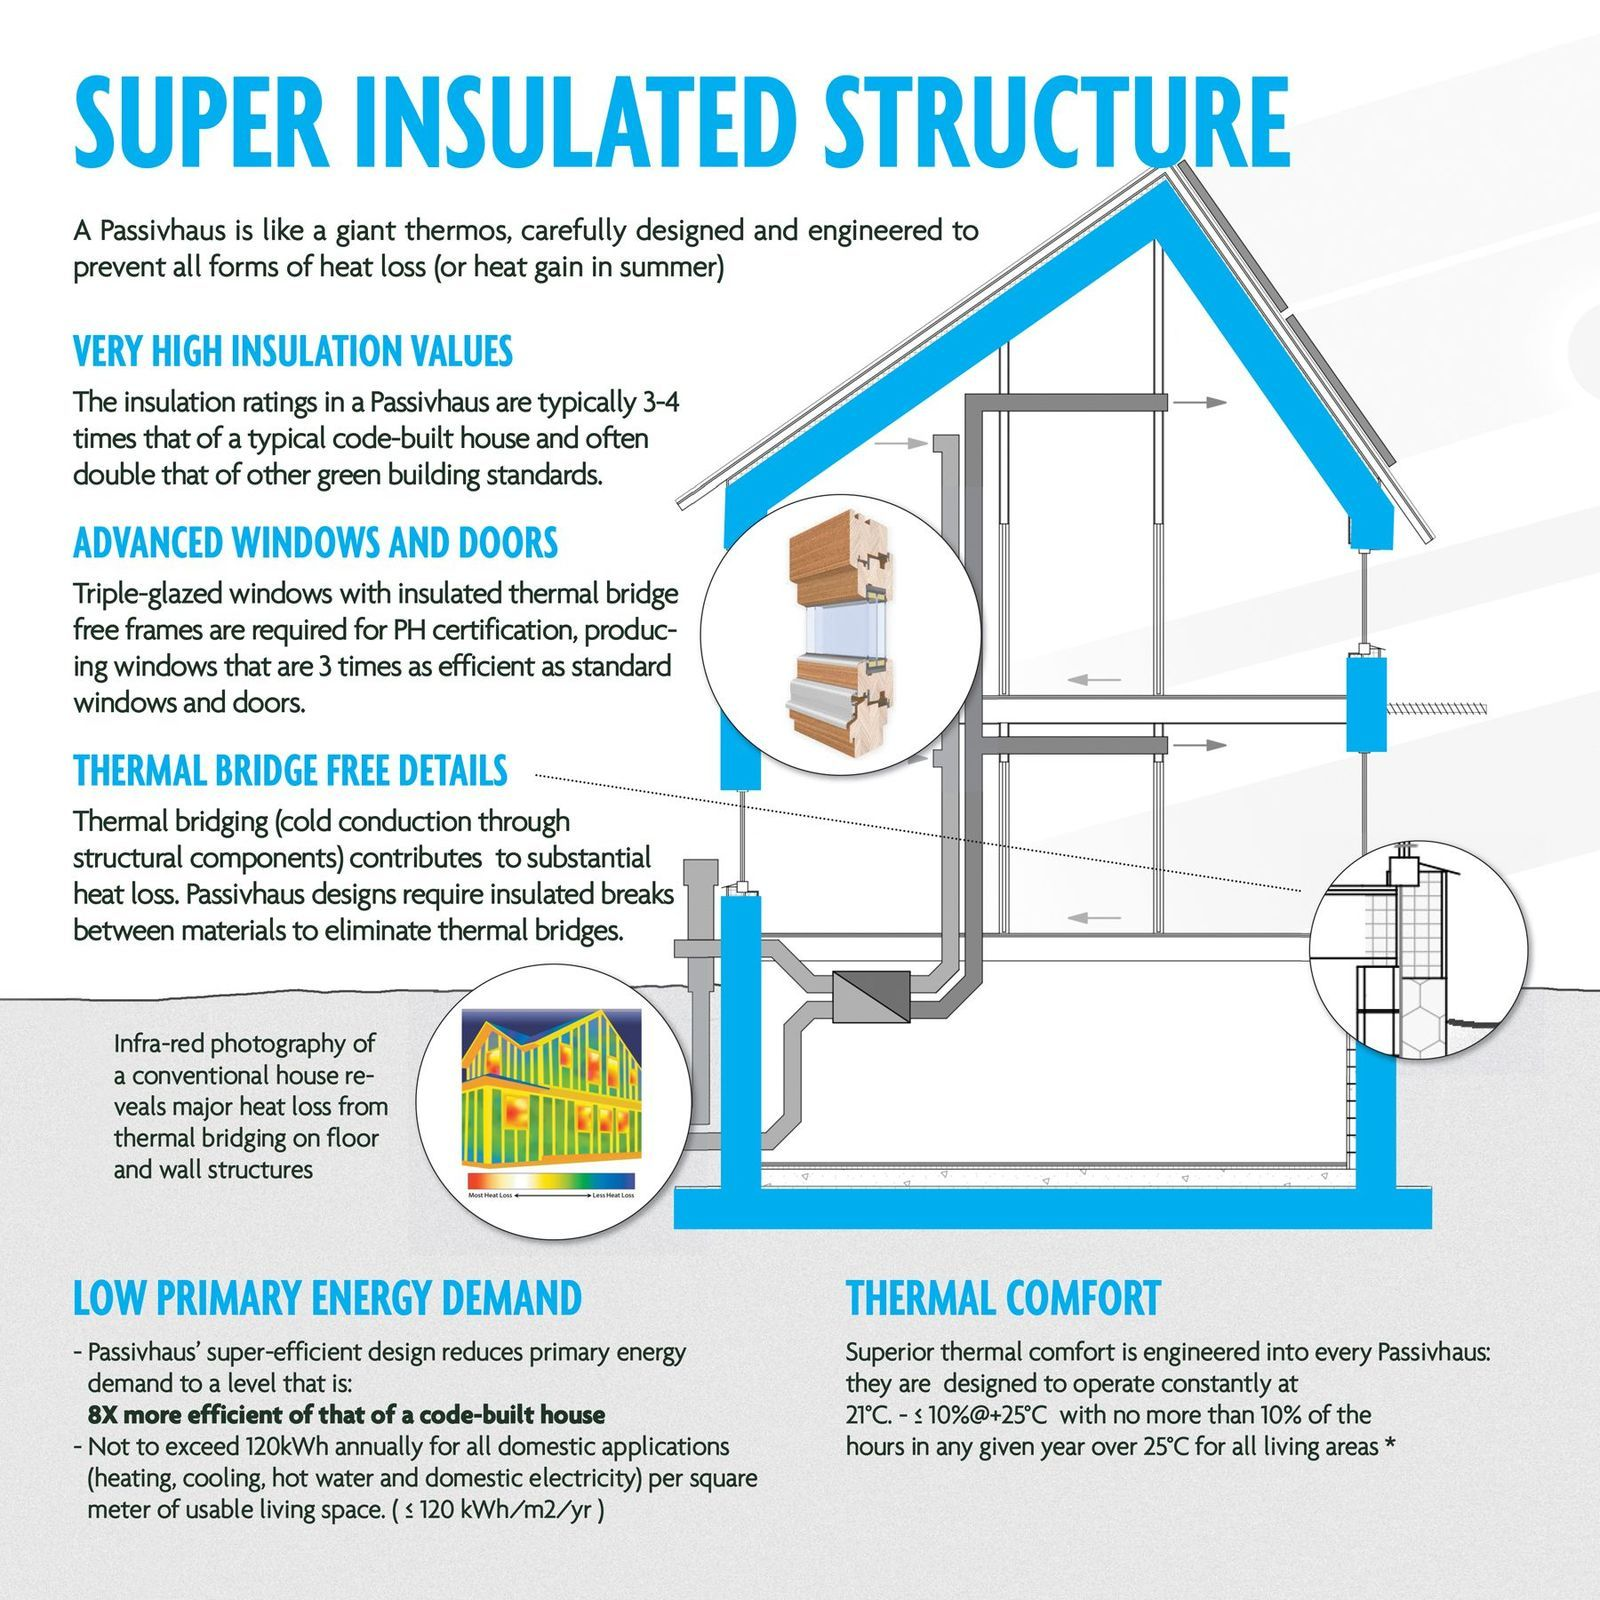 Landmark passivhaus super insulated structure for Super insulated water heater